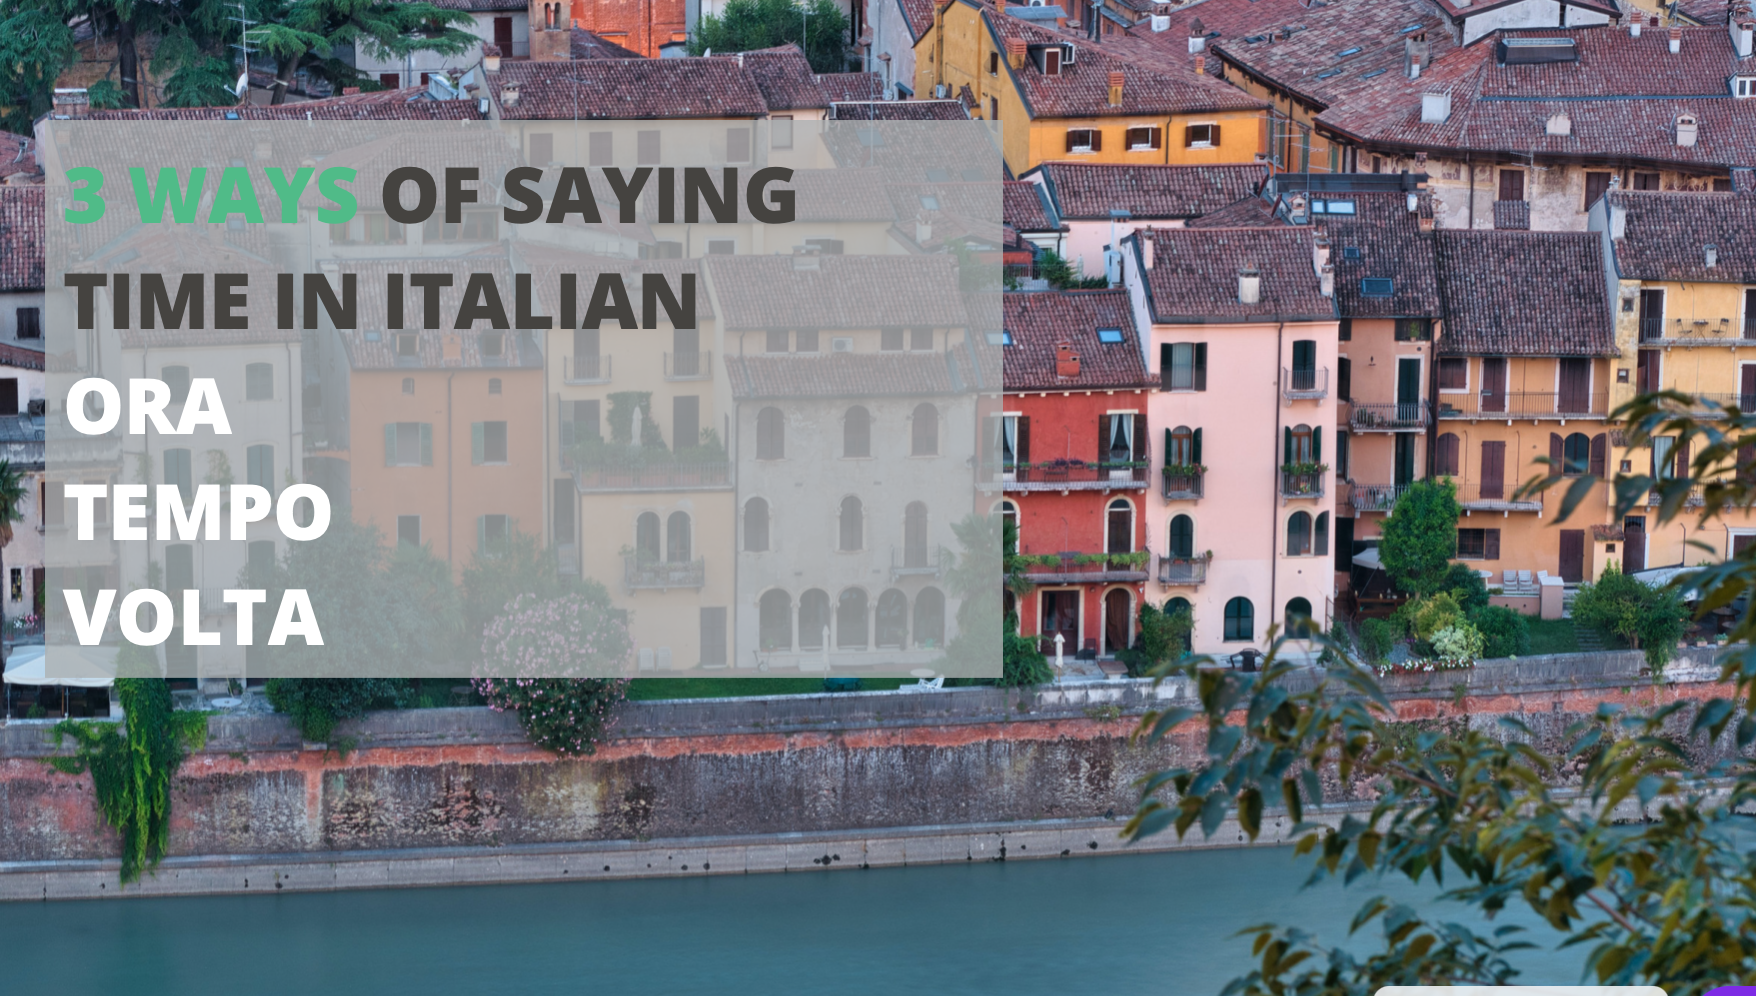 The 3 ways of saying TIME in Italian – ORA/TEMPO/VOLTA